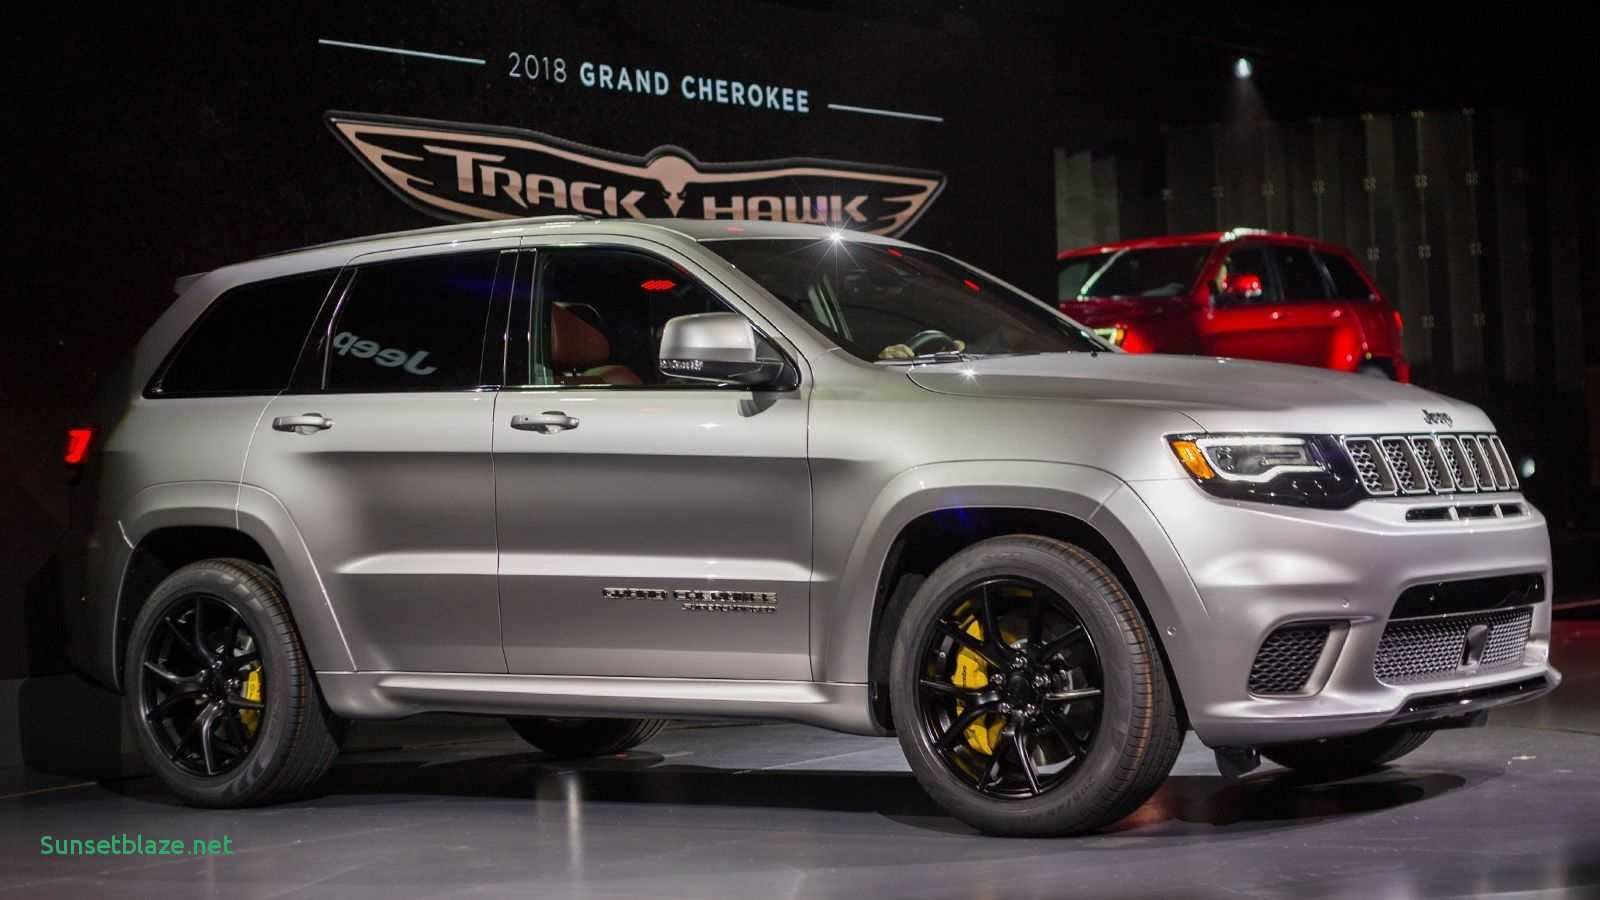 51 Best Review The Grand Cherokee Jeep 2019 Exterior And Interior Review Ratings for The Grand Cherokee Jeep 2019 Exterior And Interior Review